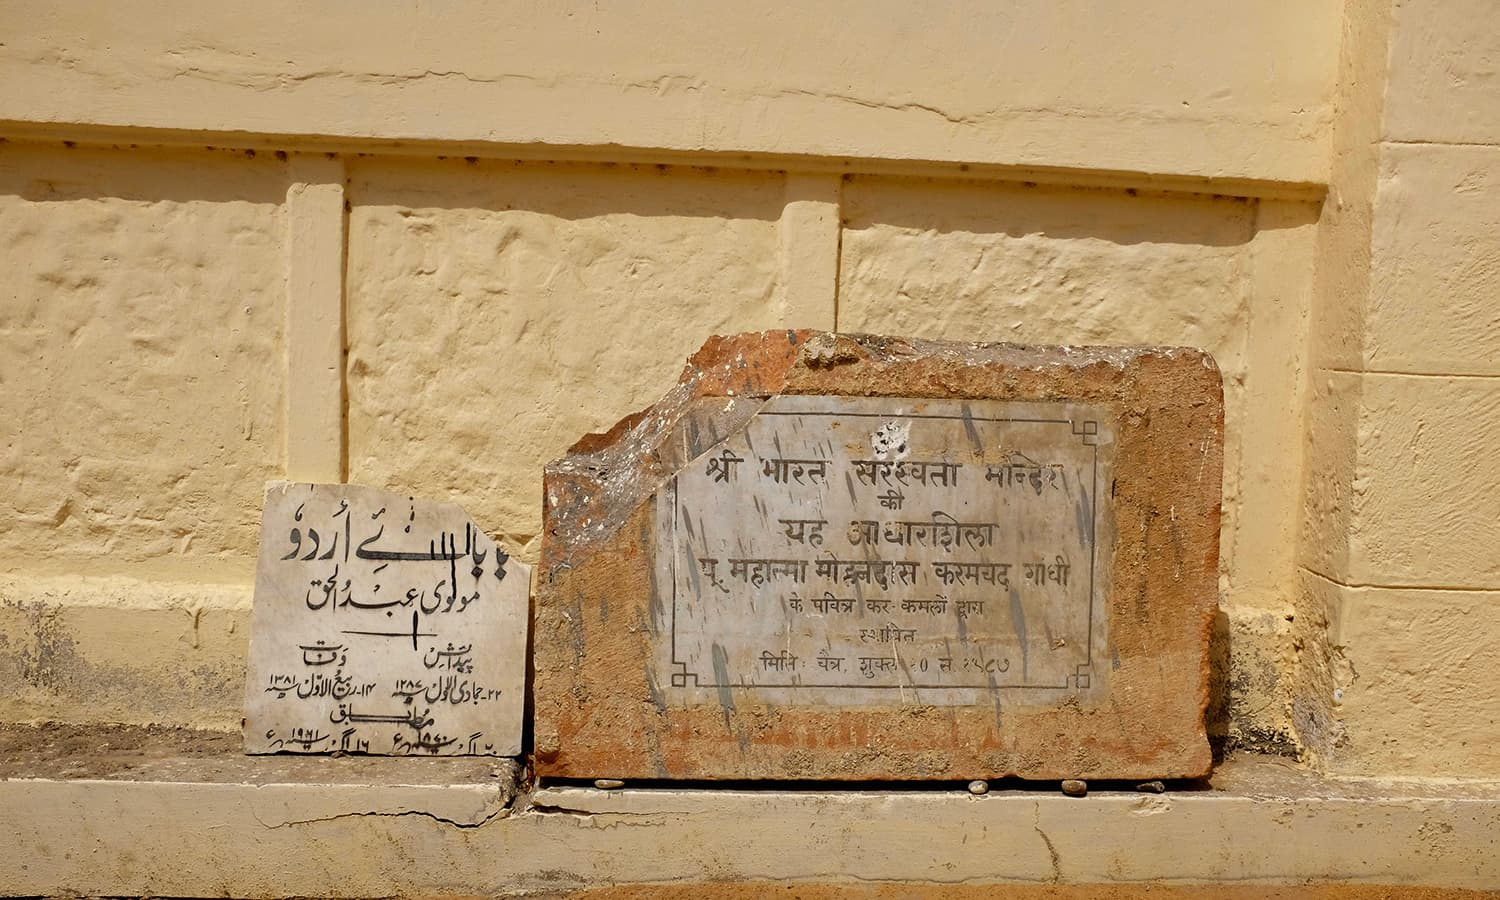 The Hindi text on the school's foundation stone.